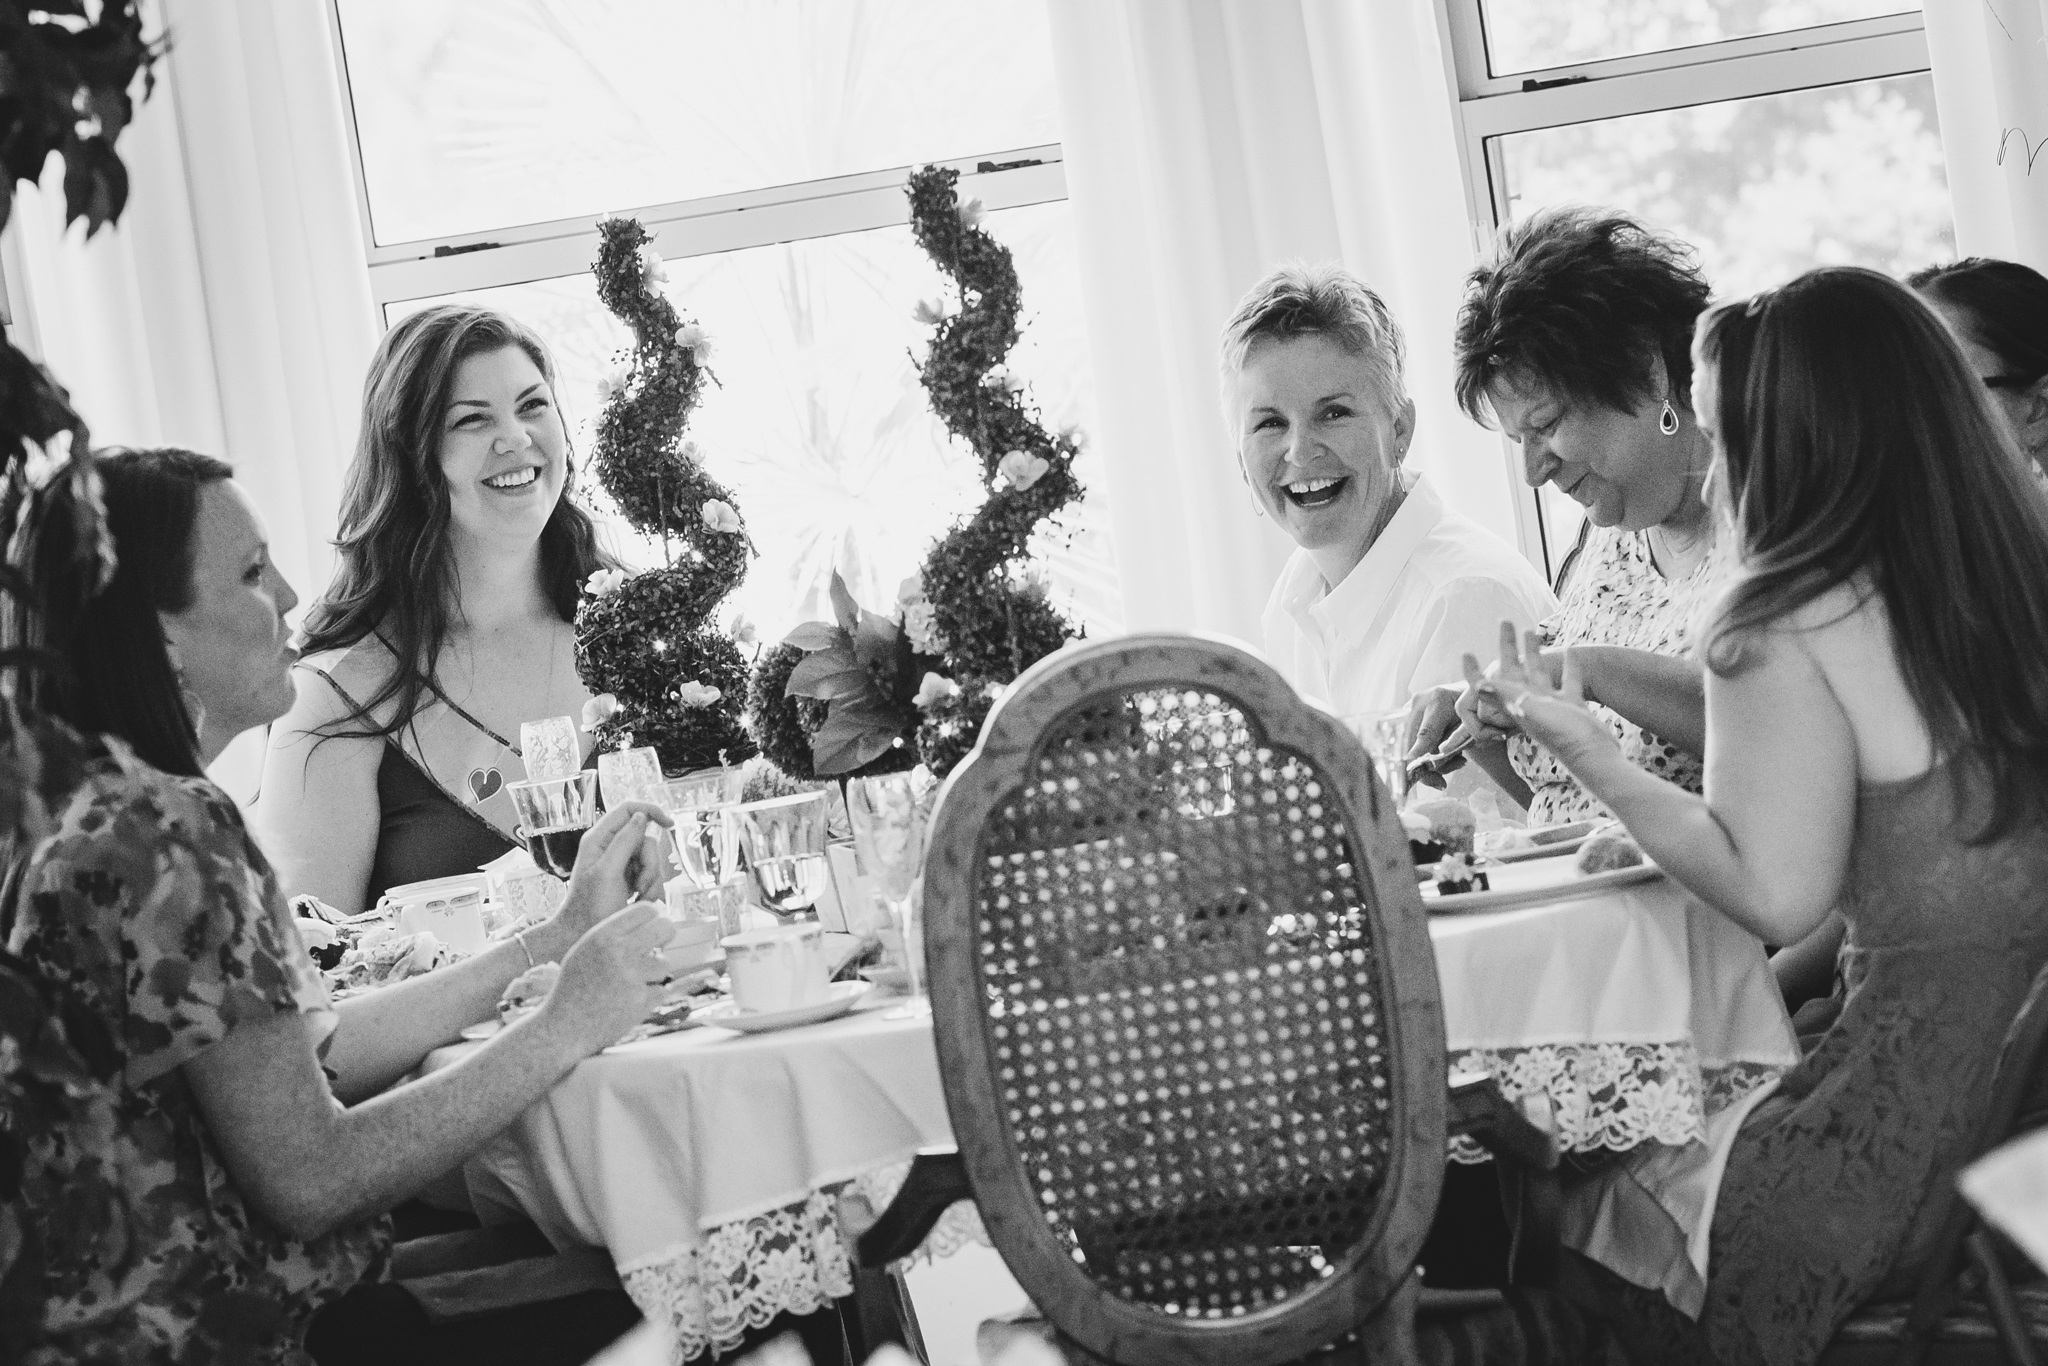 tiffany-bridal-shower-black-and-white-laughs